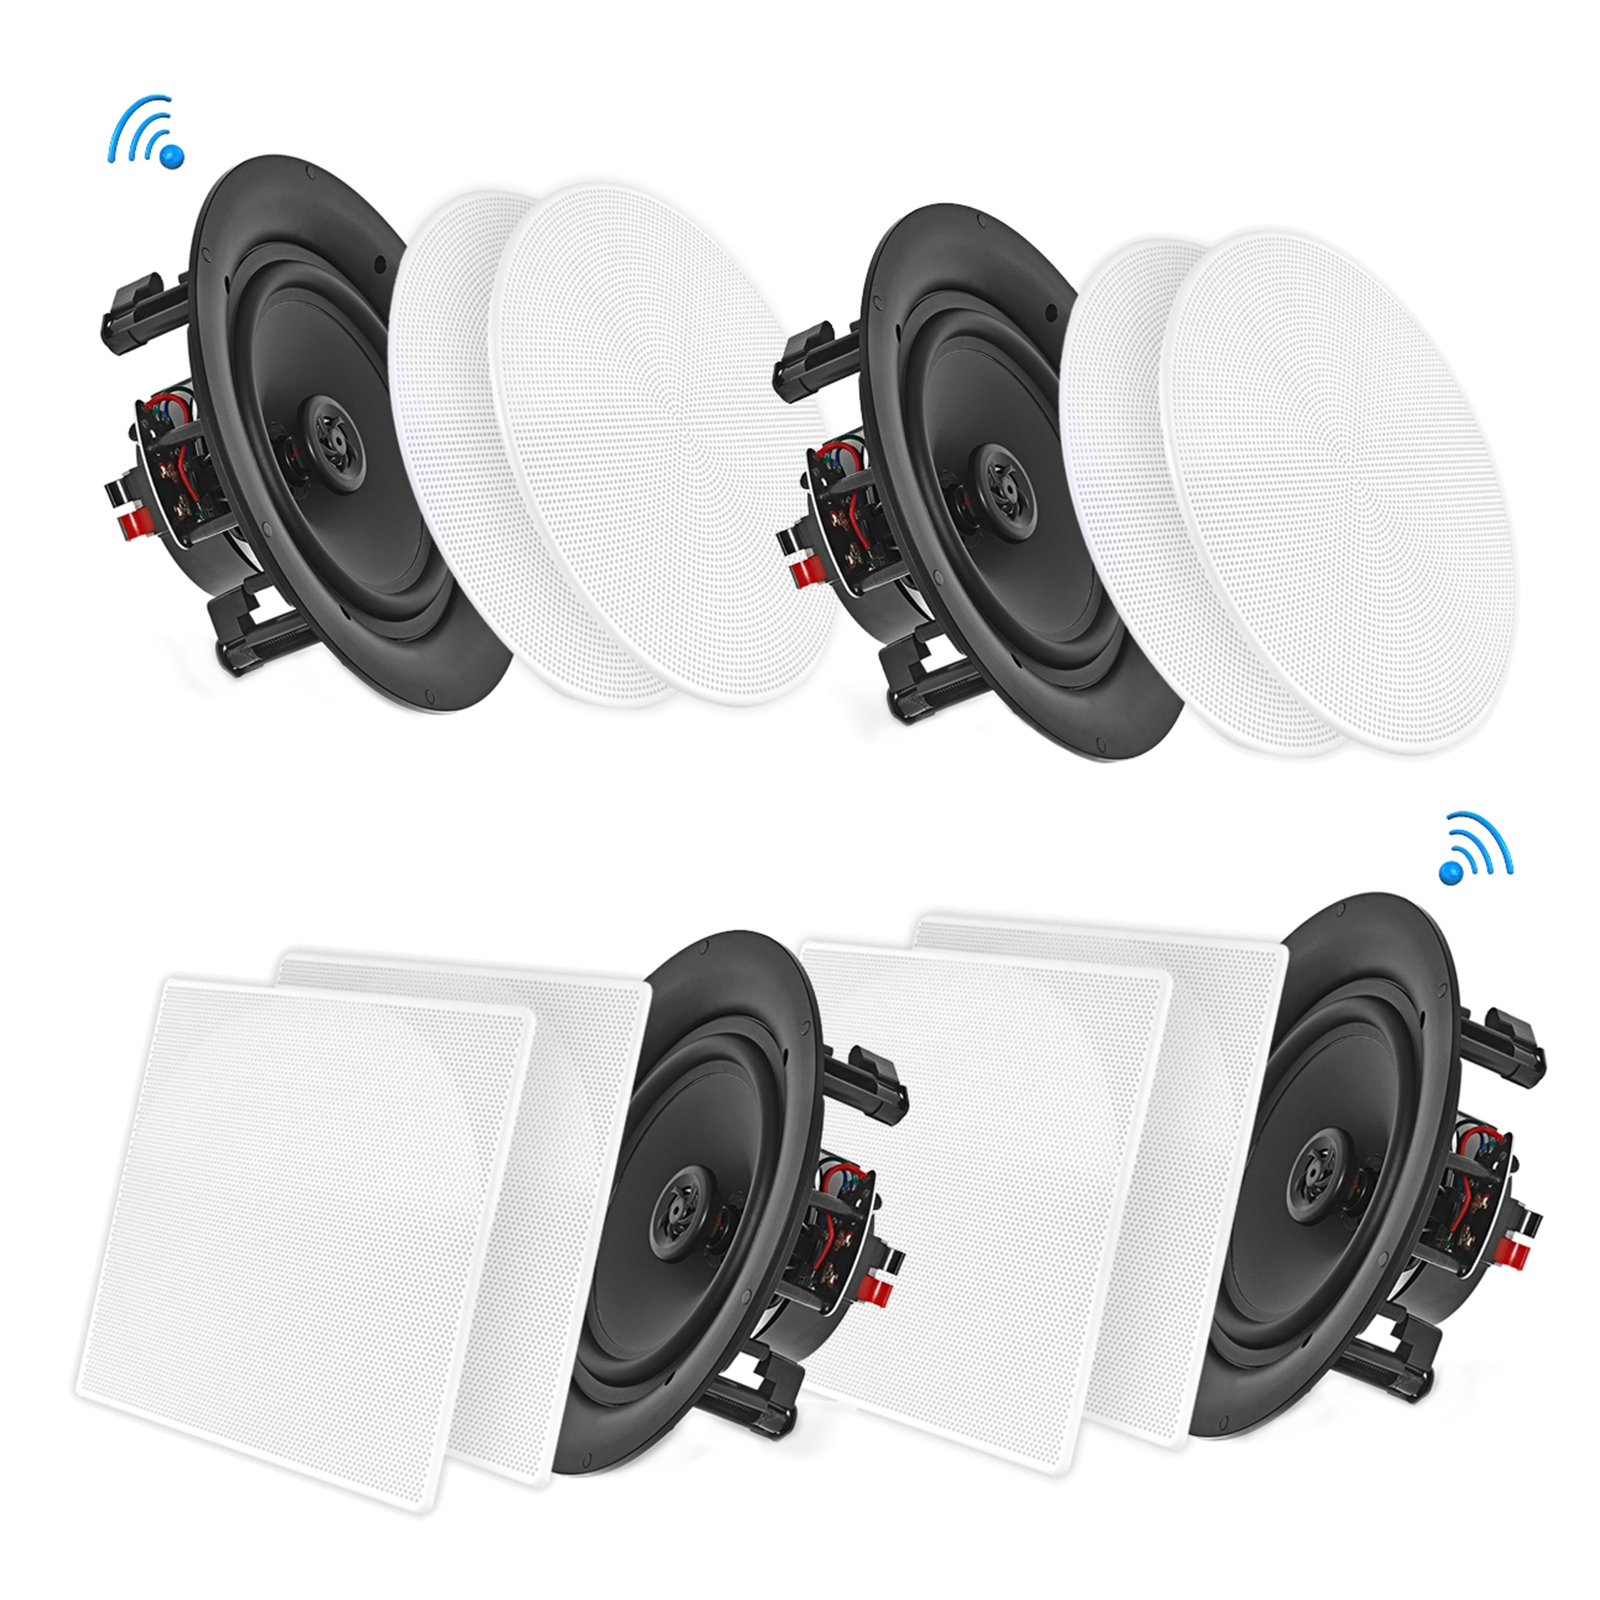 "6.5"" BT Ceiling / Wall Speaker Kit, (4) Flush Mount 2-Way Home Speakers, 200 Watt (4 Speakers)"